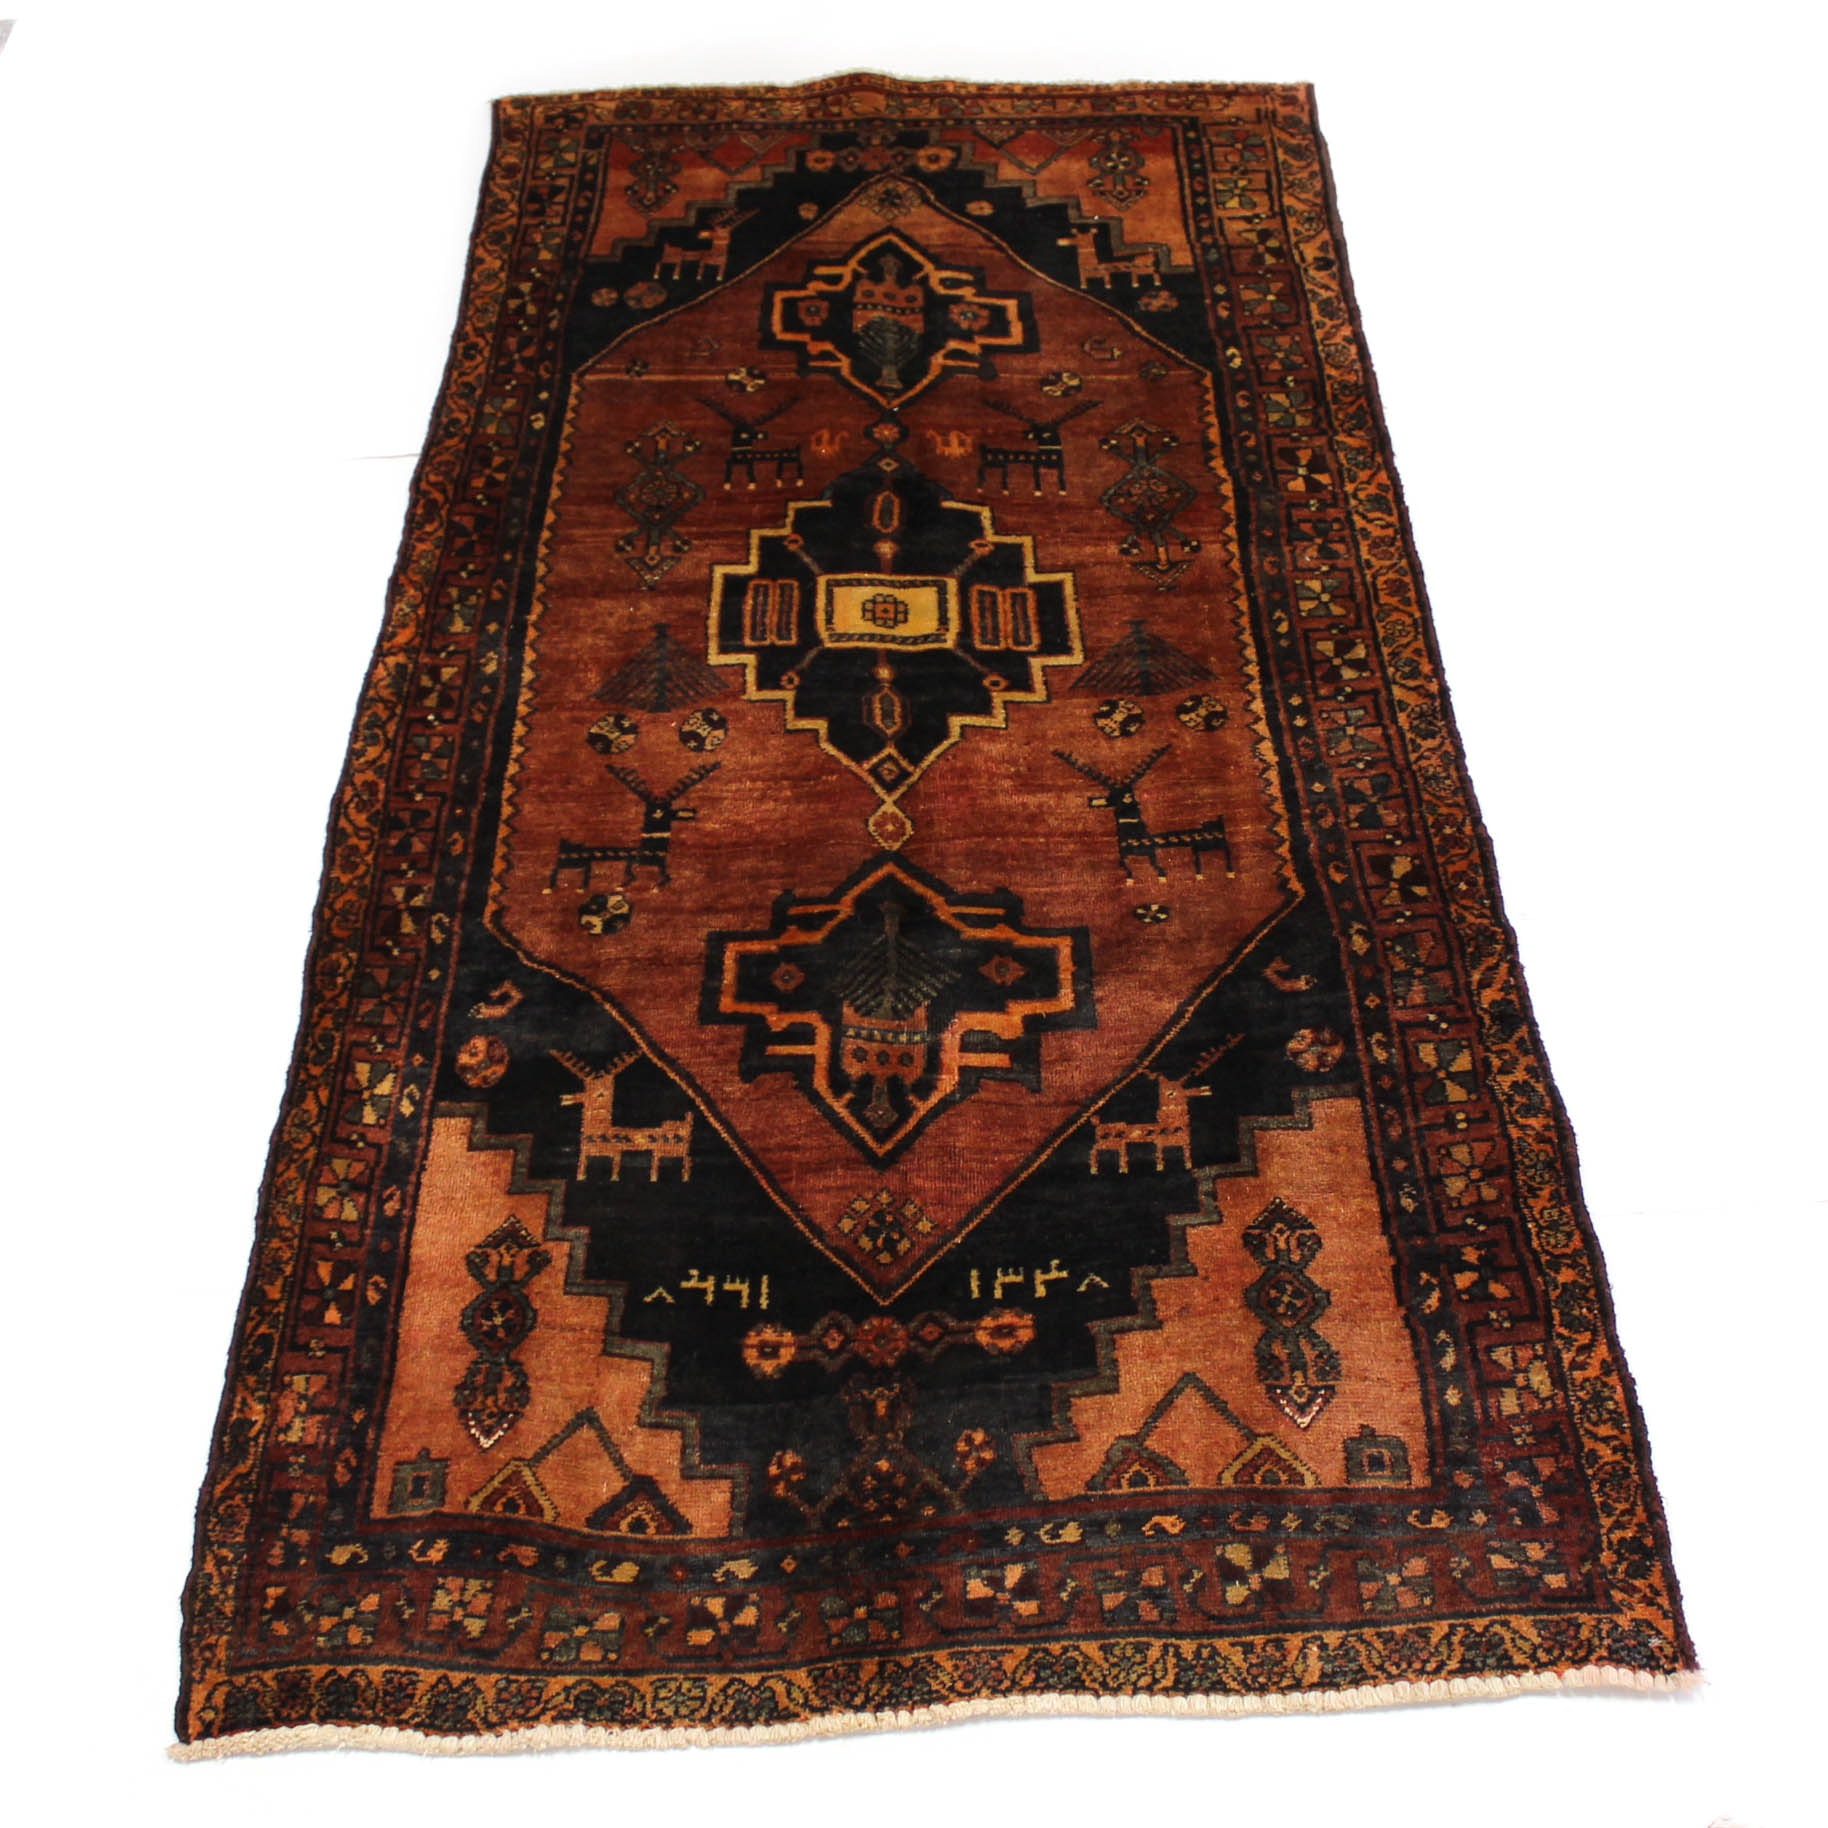 3'7 x 8'2 Hand-Knotted Semi-Antique Persian Northwest Pictorial Rug